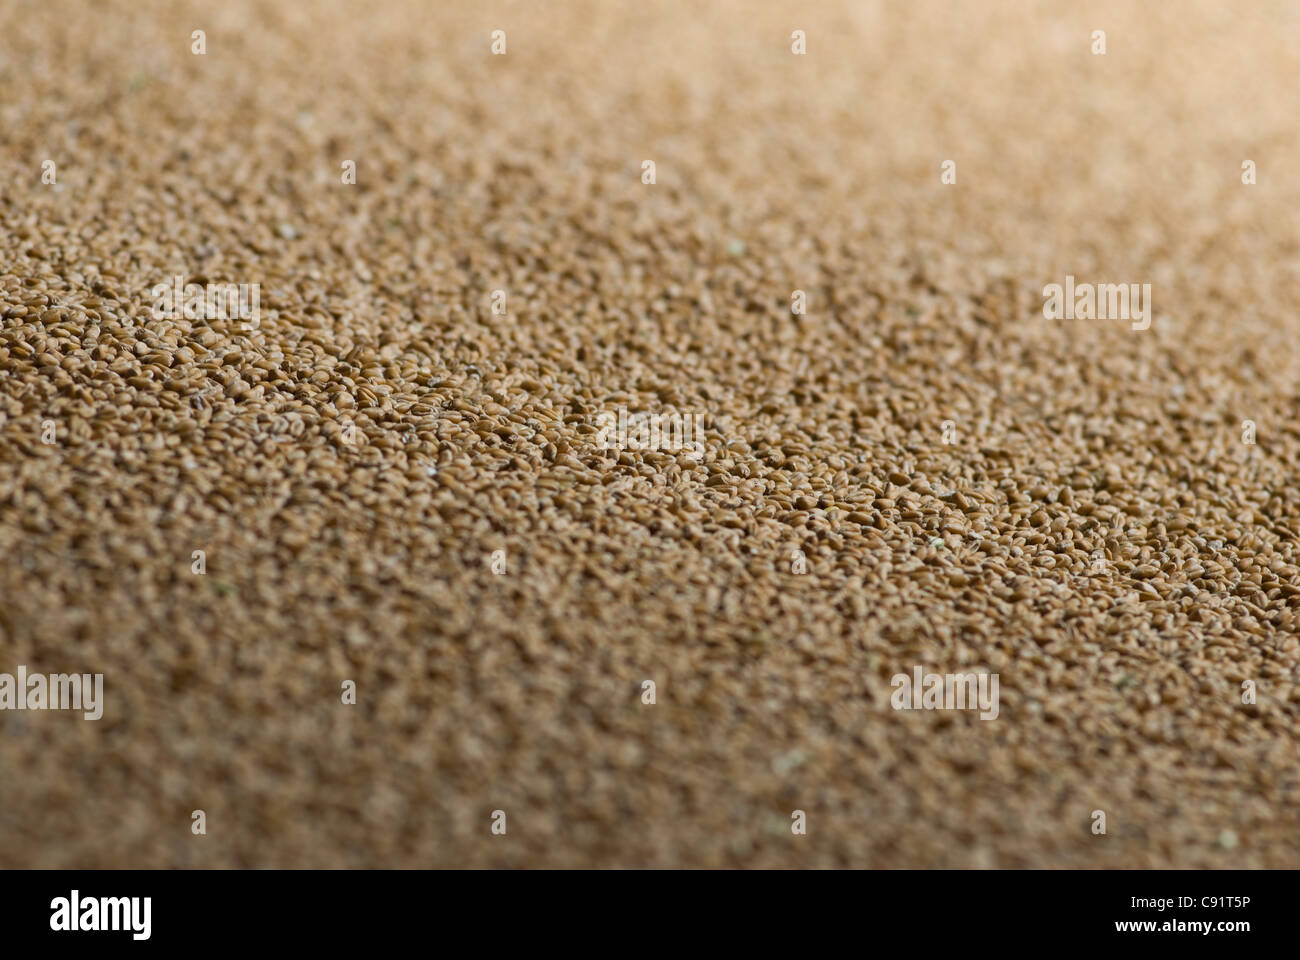 Close up of wheat grains Stock Photo